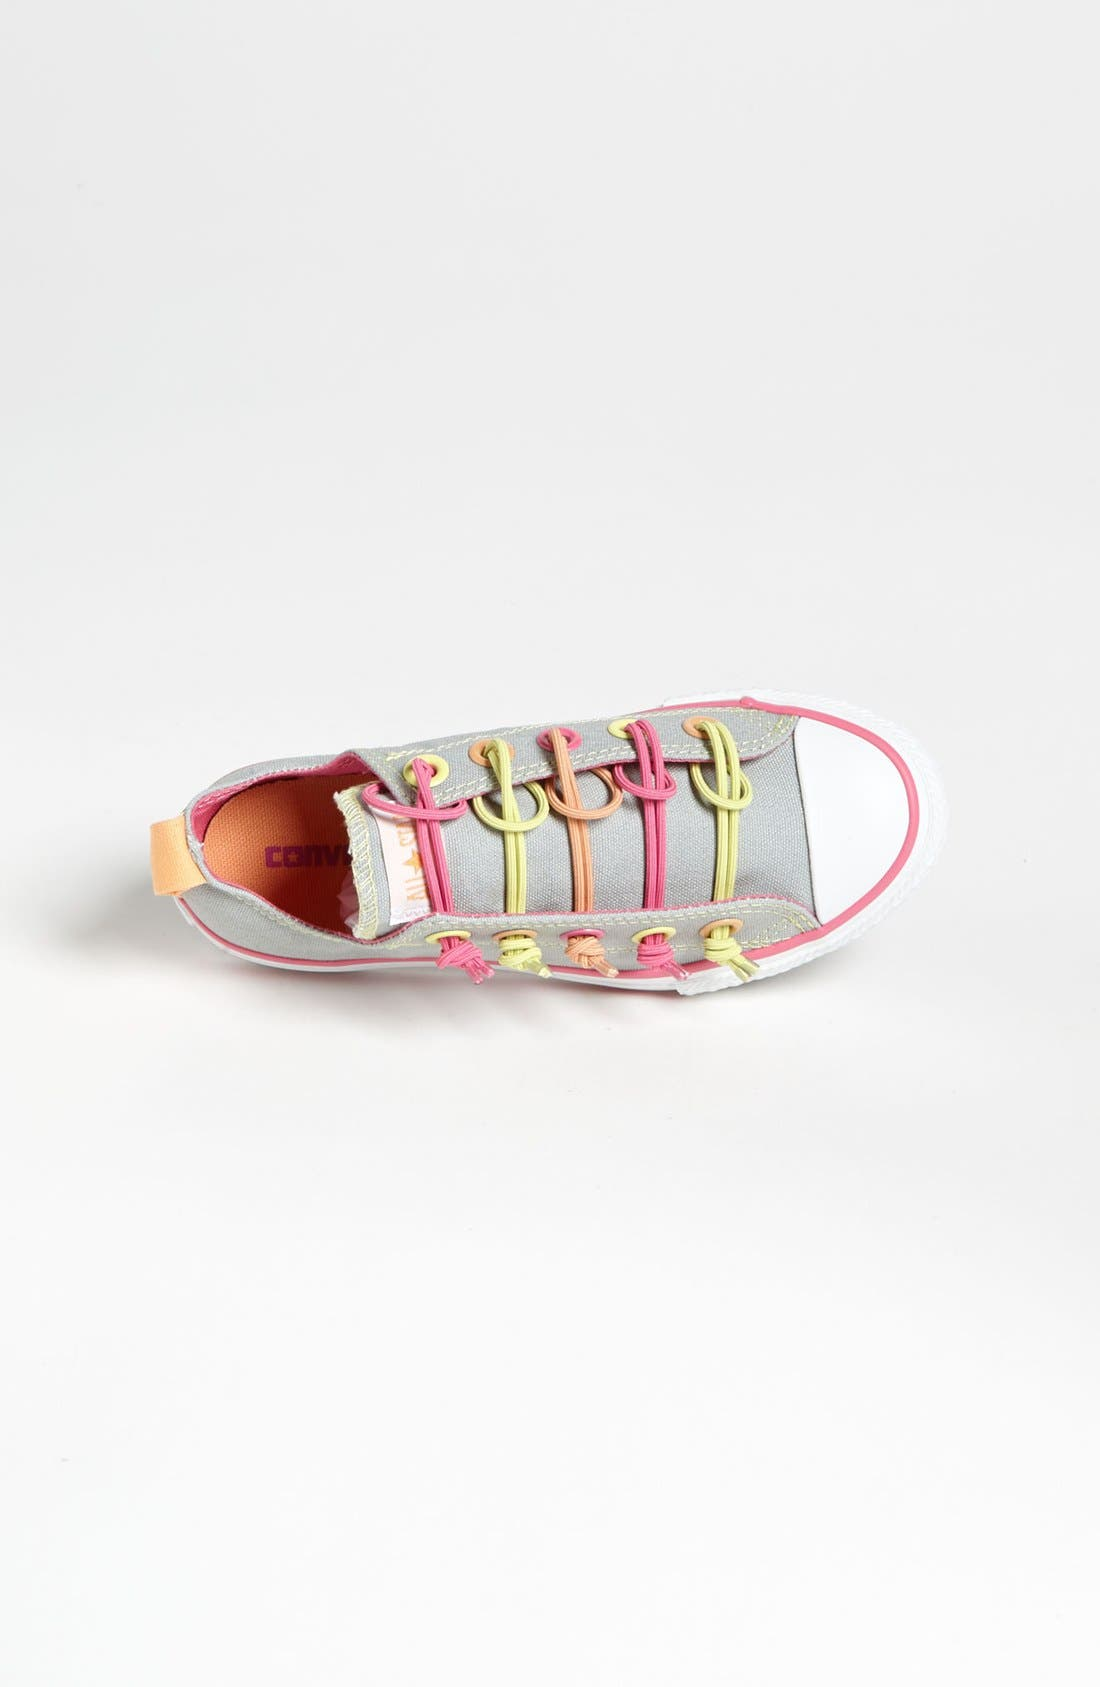 Alternate Image 3  - Converse All Star® 'Loop 2 Knot' Sneaker (Toddler, Little Kid & Big Kid)